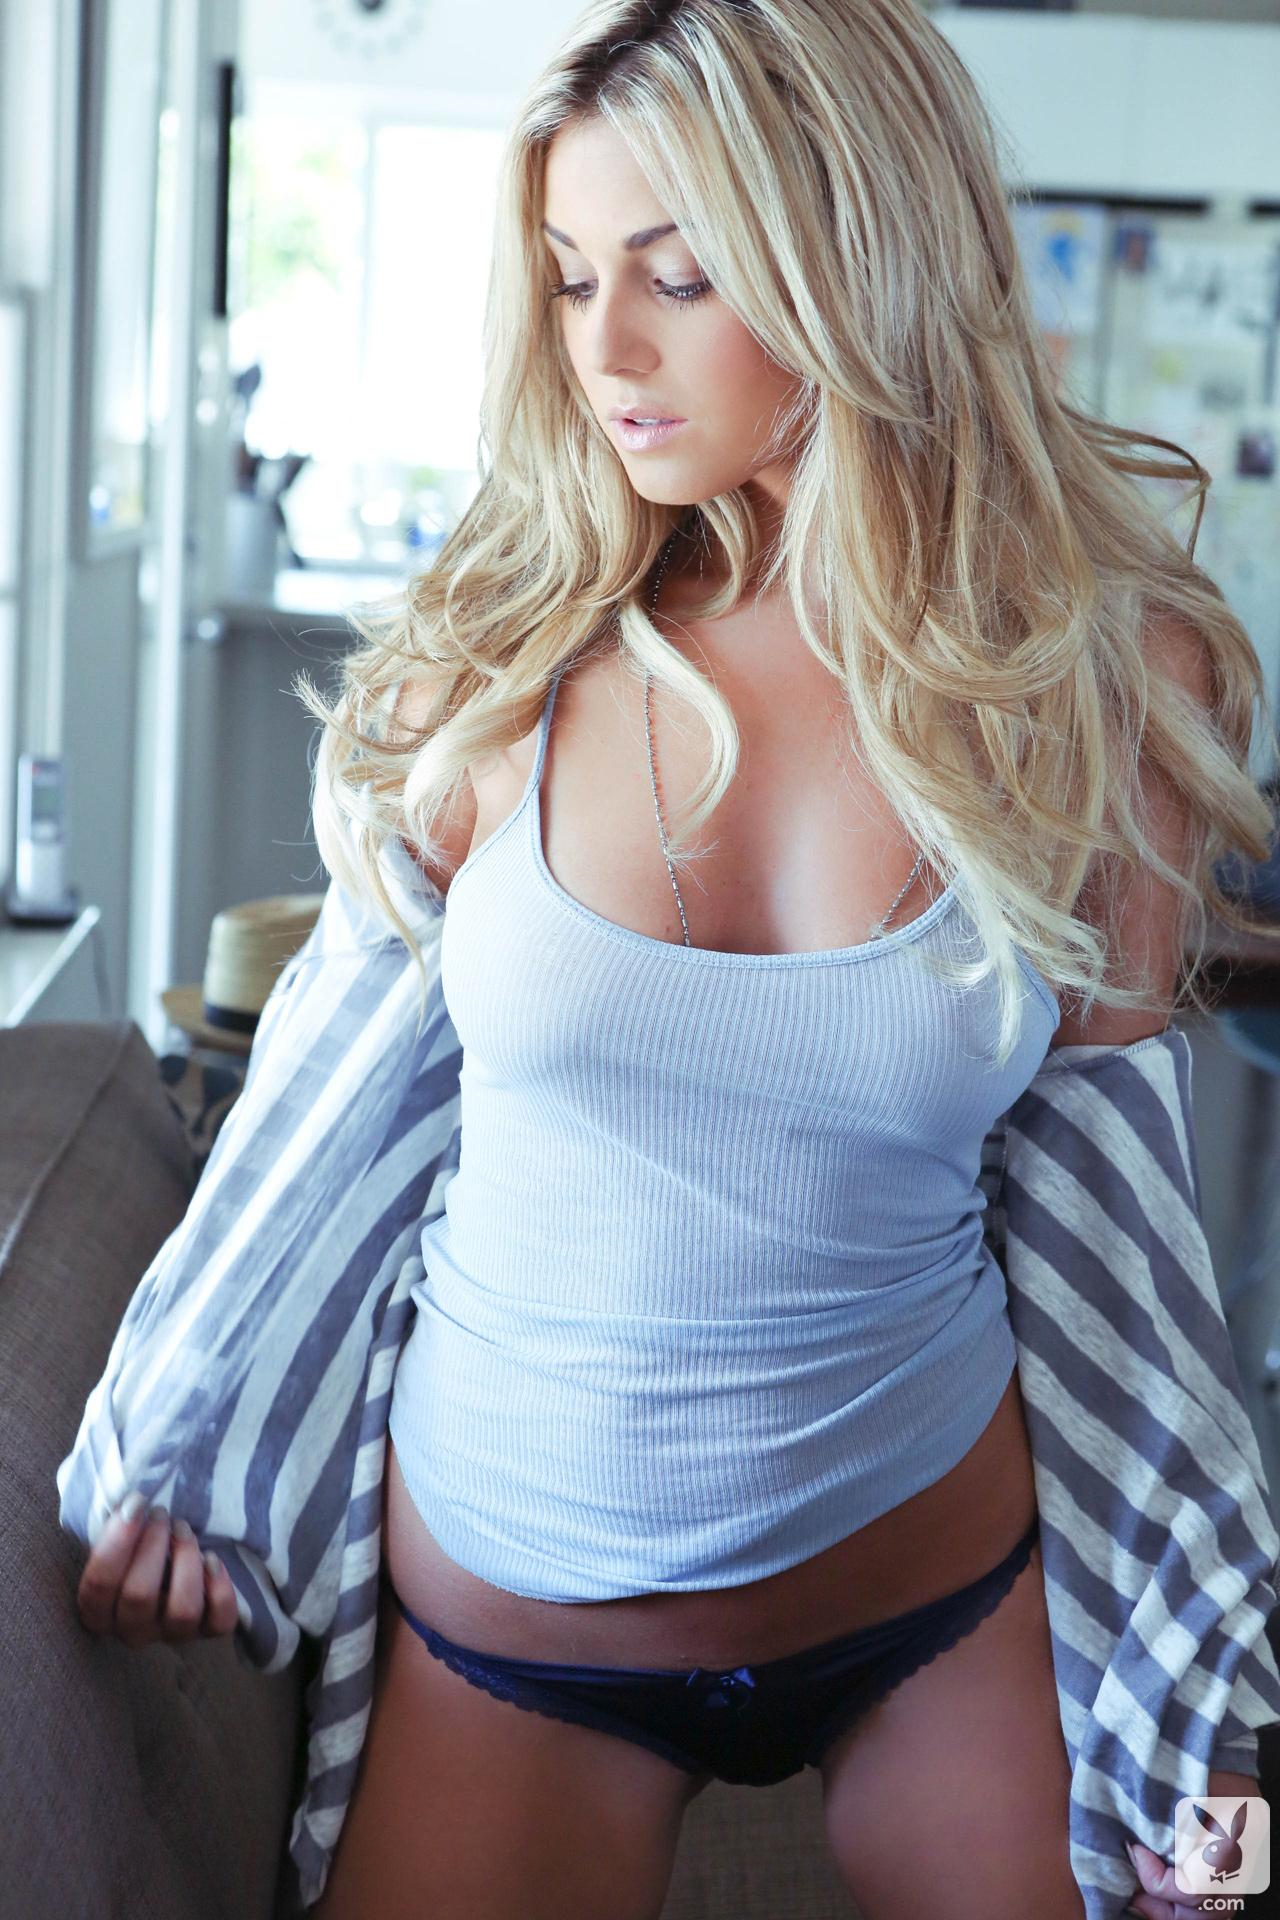 Ciara Price was the Playboy Playmate of the Month for November 2011